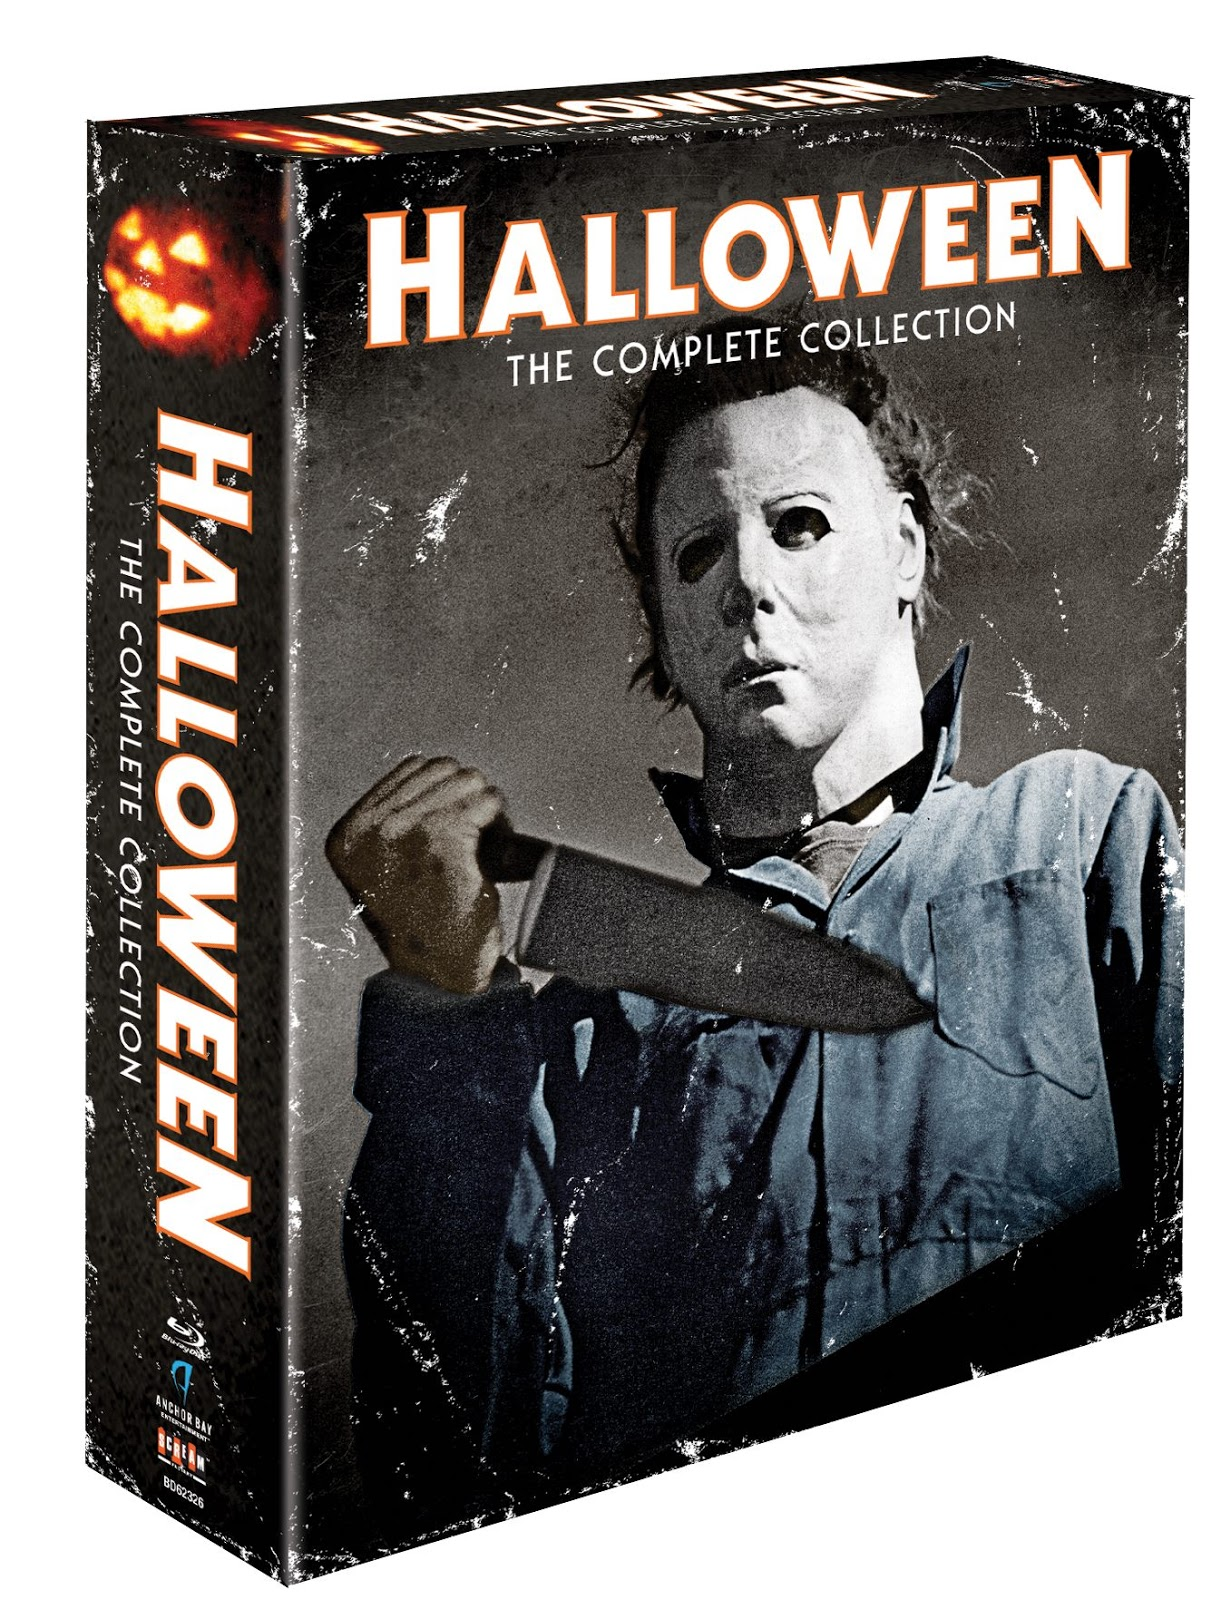 the horrors of halloween: halloween the complete collection blu-ray